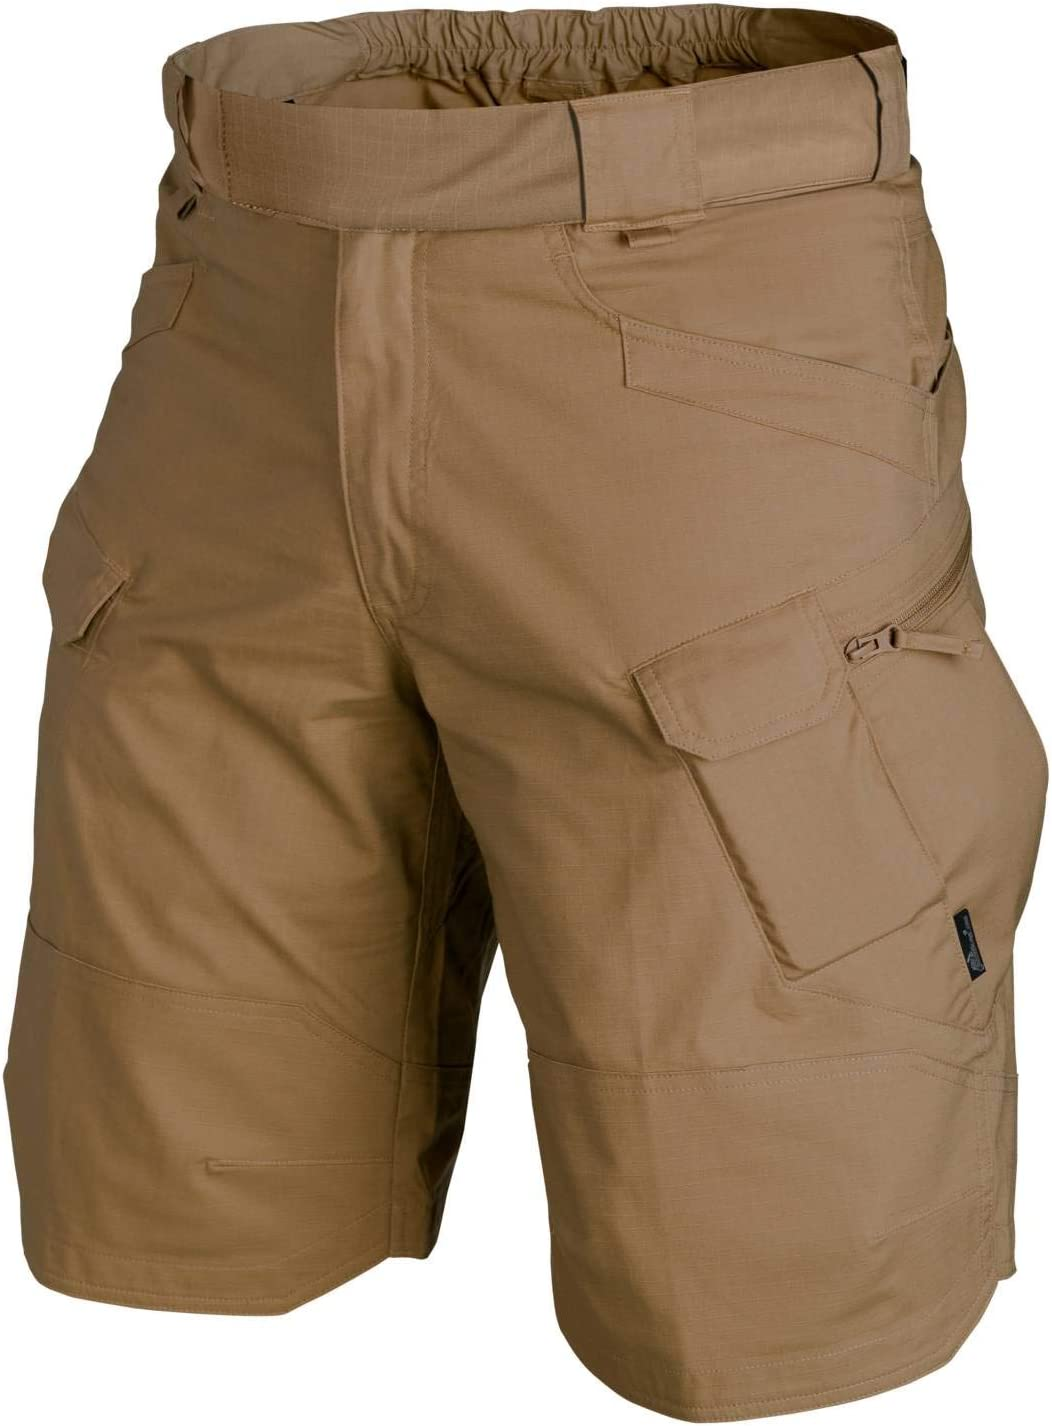 Helikon-Tex URBAN TACTICAL SHORTS 11 PolyCotton Ripstop